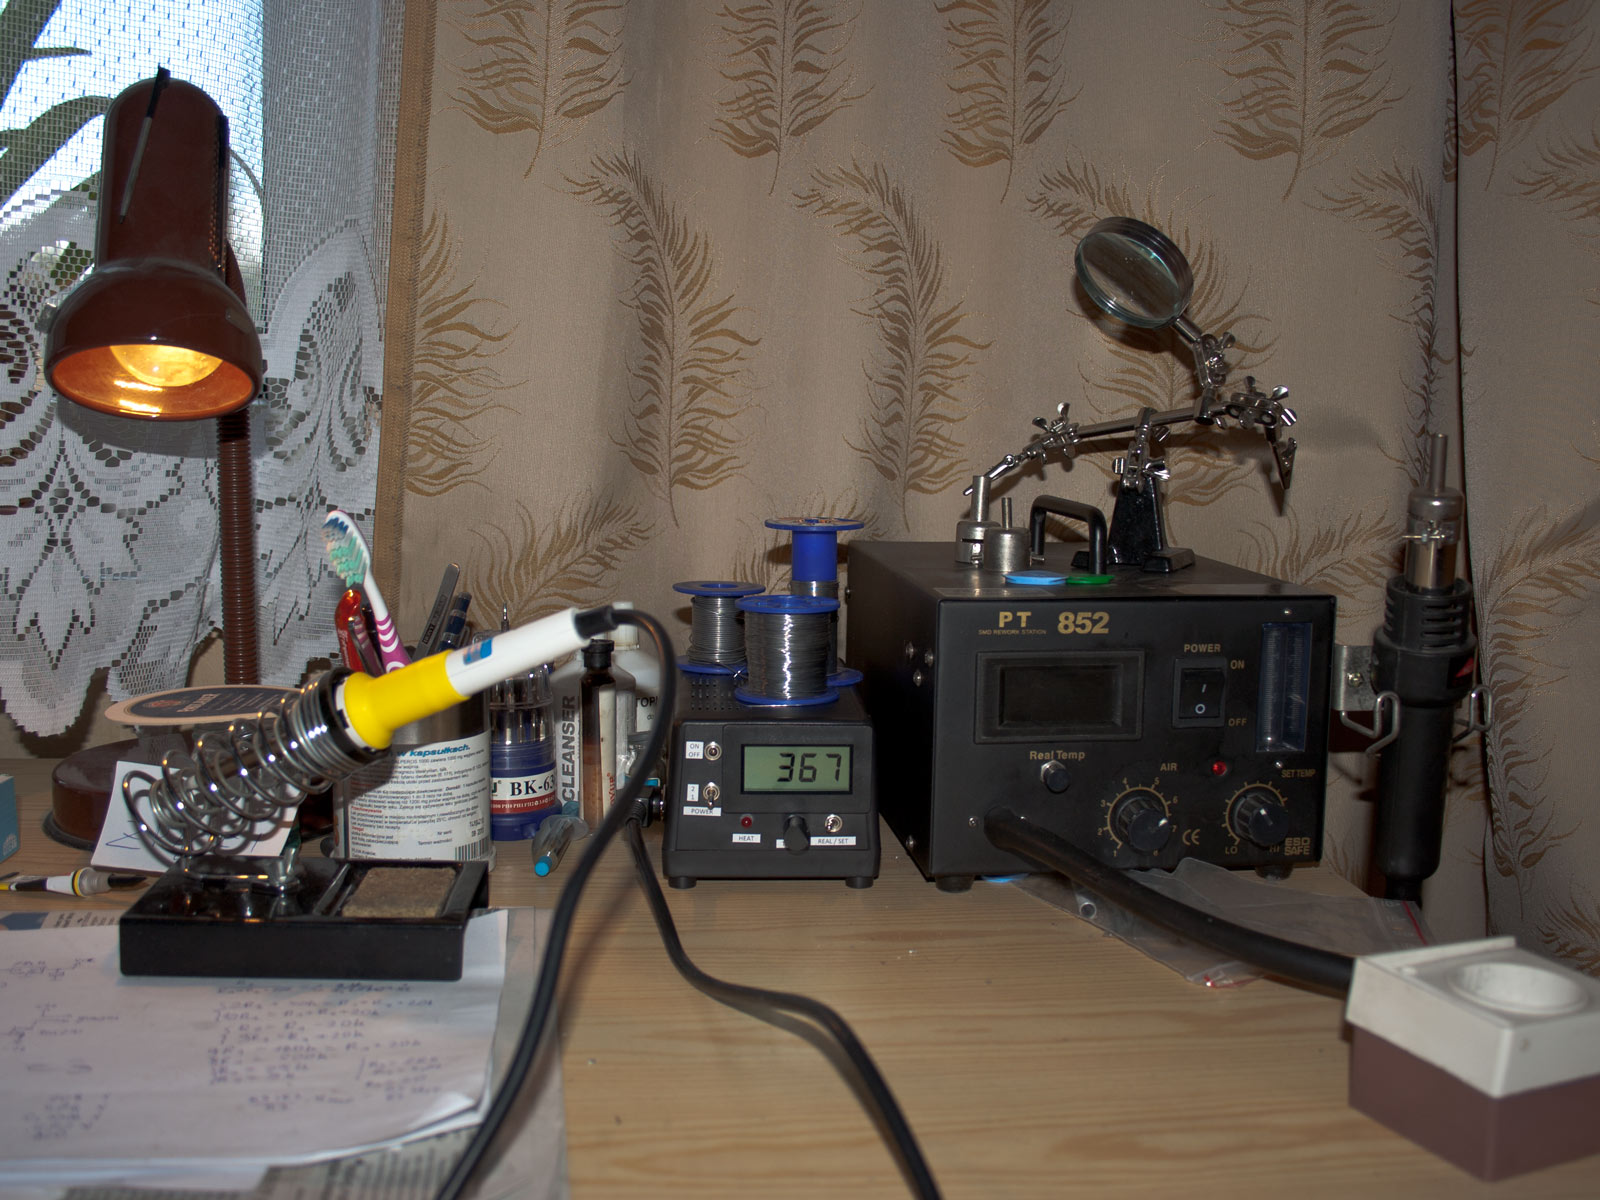 Soldering station - with its big brother